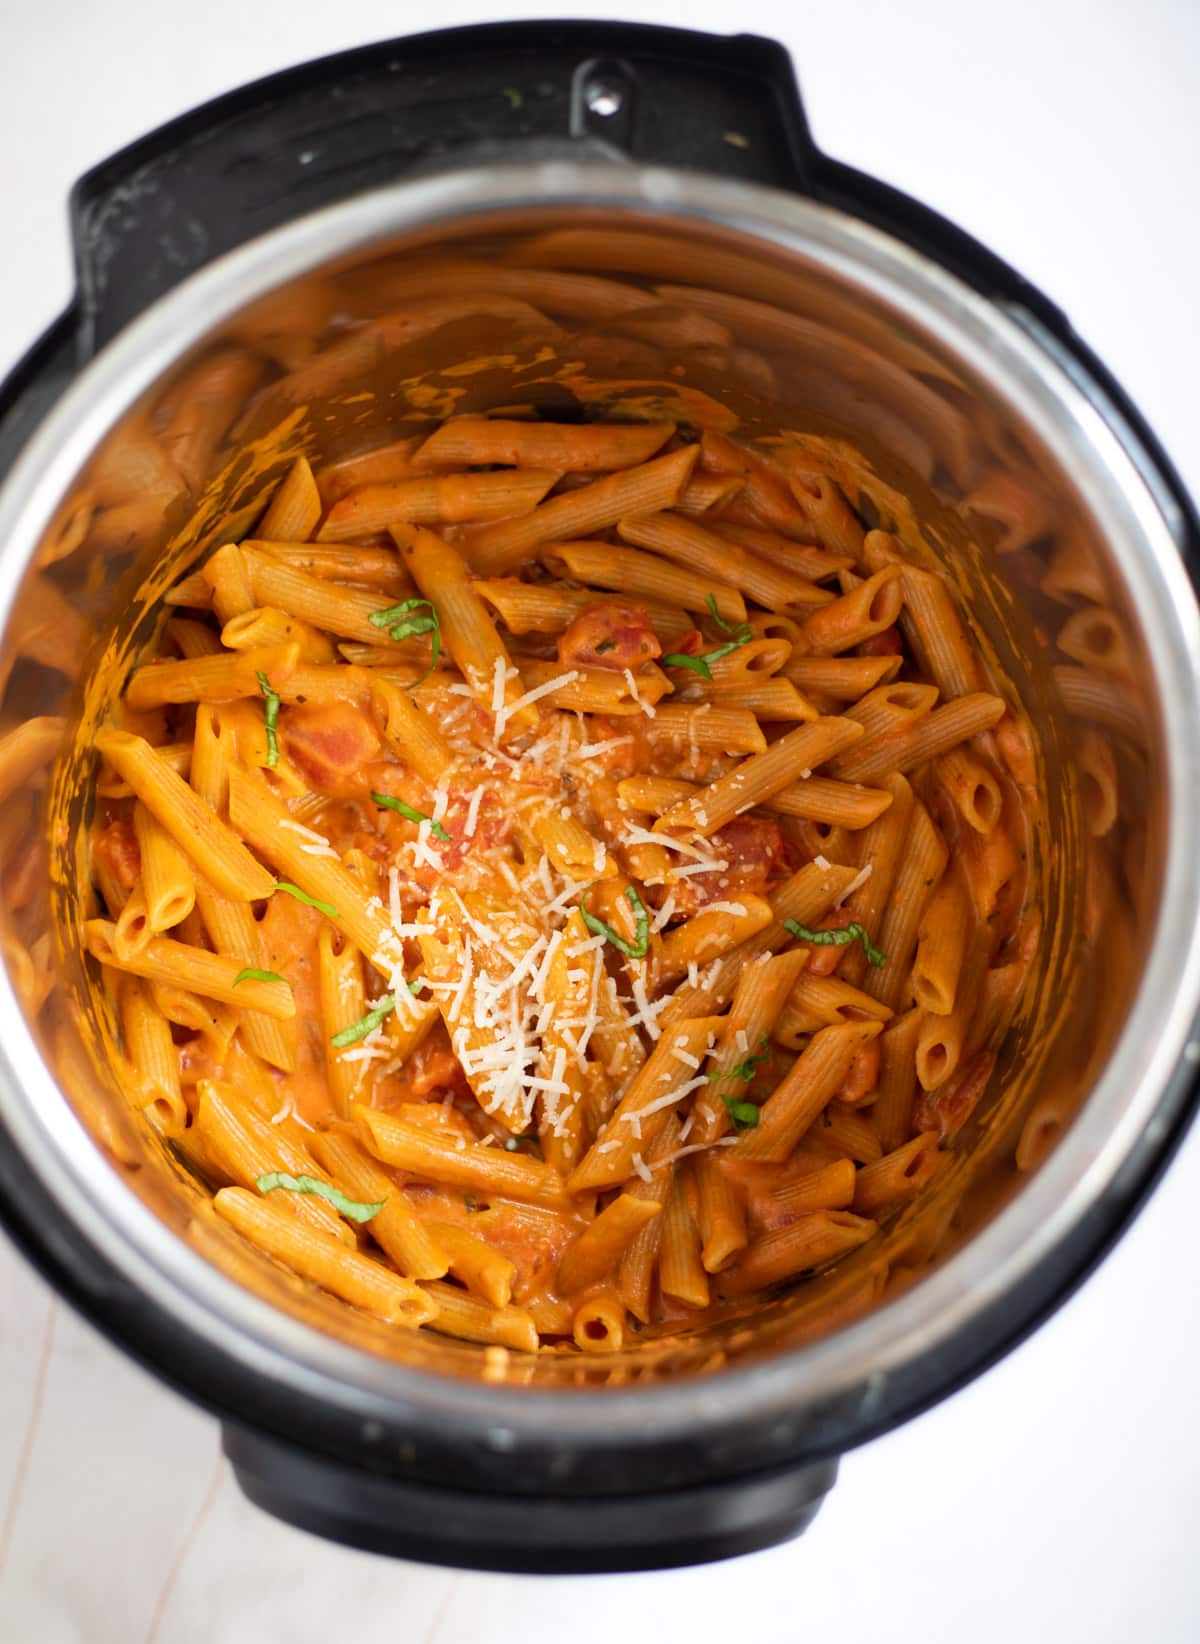 Instant pot Penne Pasta in Tomato Cream Sauce garnished with basil leaves and parmesan cheese